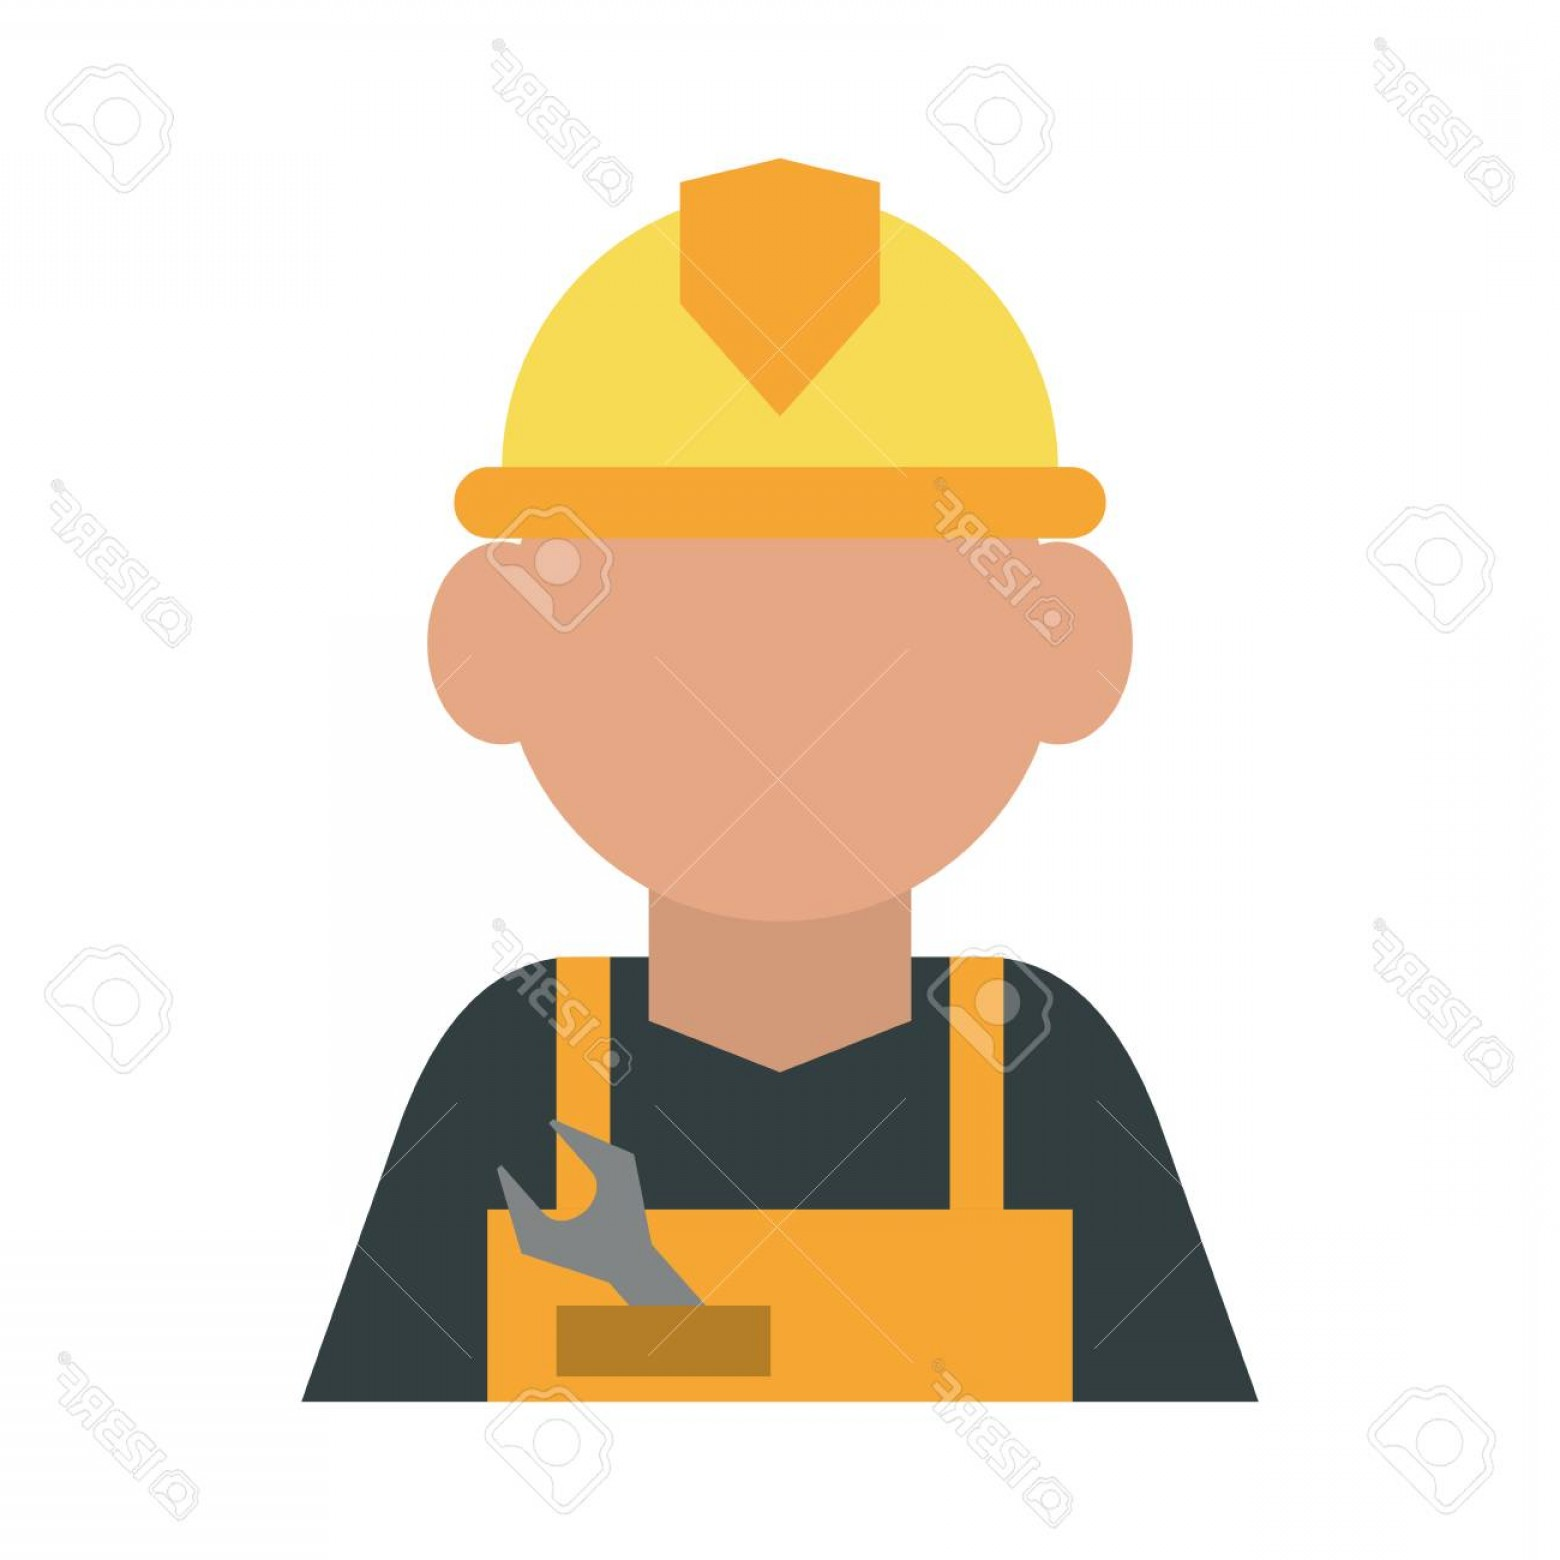 General Contractor Vector: Photostock Vector Construction Worker Builder Contractor Icon Image Vector Illustration Design